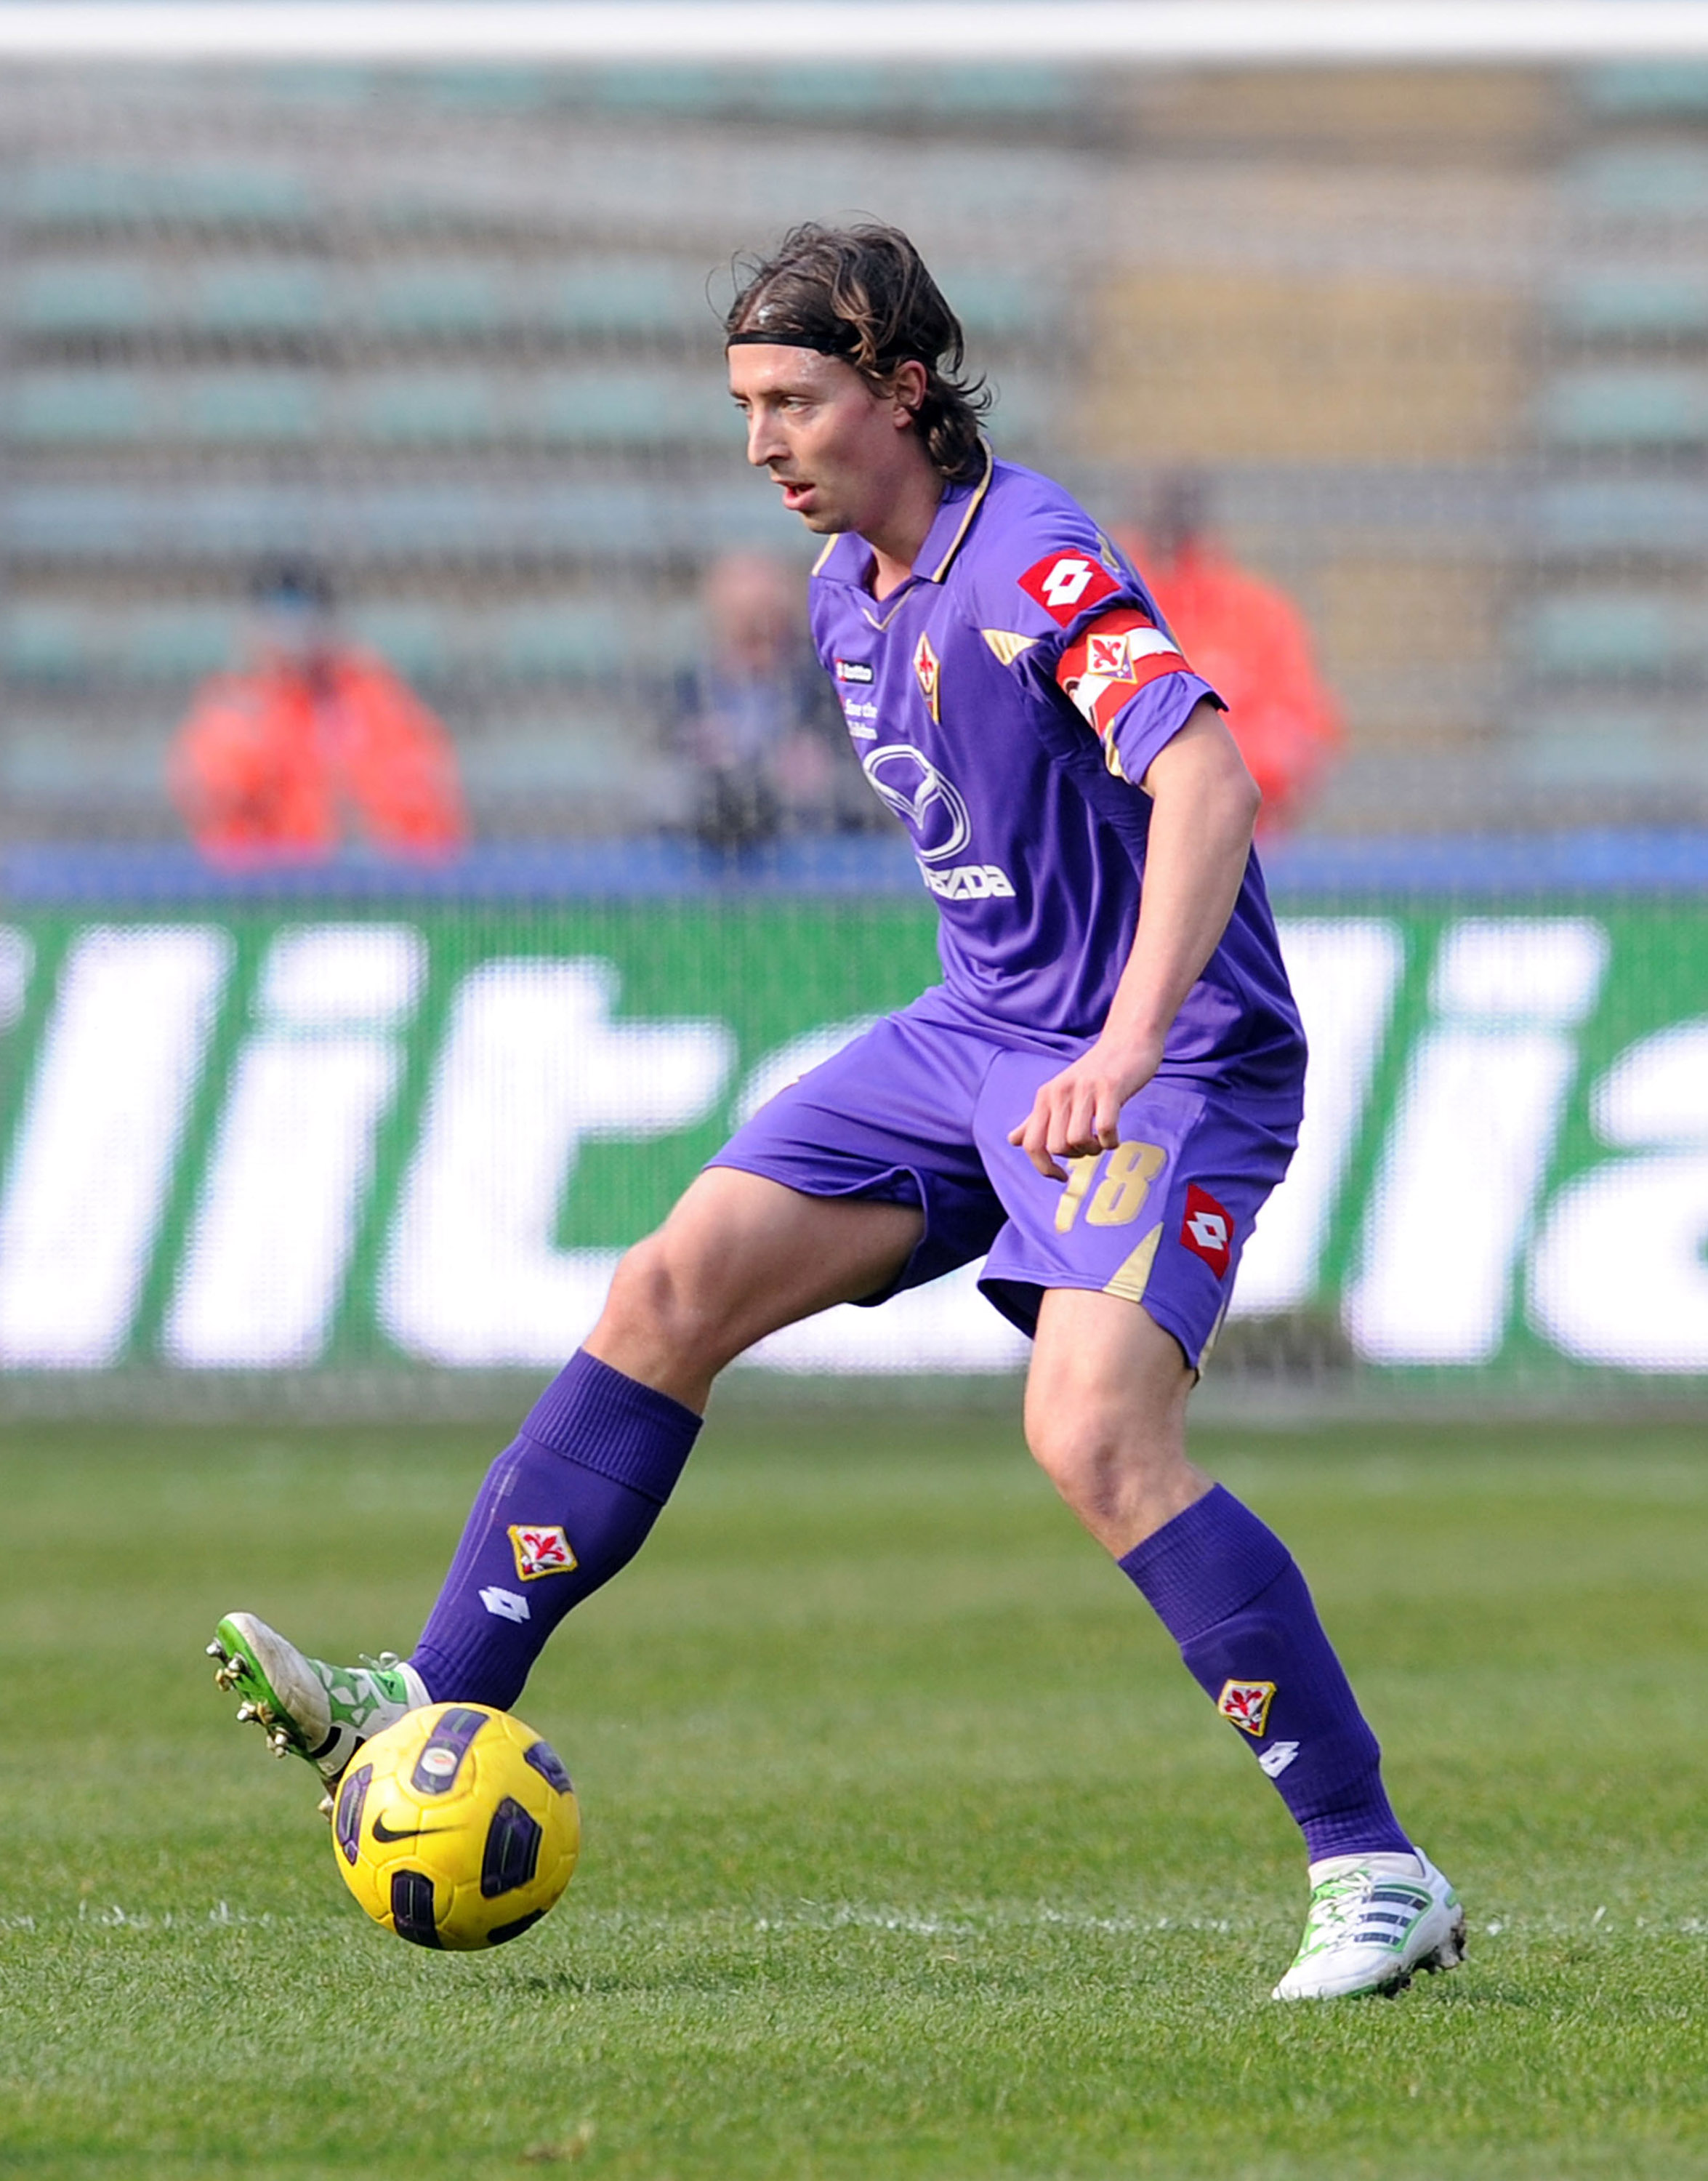 BARI, ITALY - FEBRUARY 27:  Riccardo Montolivo of Fiorentina in action during the Serie A match between AS Bari and ACF Fiorentina at Stadio San Nicola on February 27, 2011 in Bari, Italy.  (Photo by Giuseppe Bellini/Getty Images)